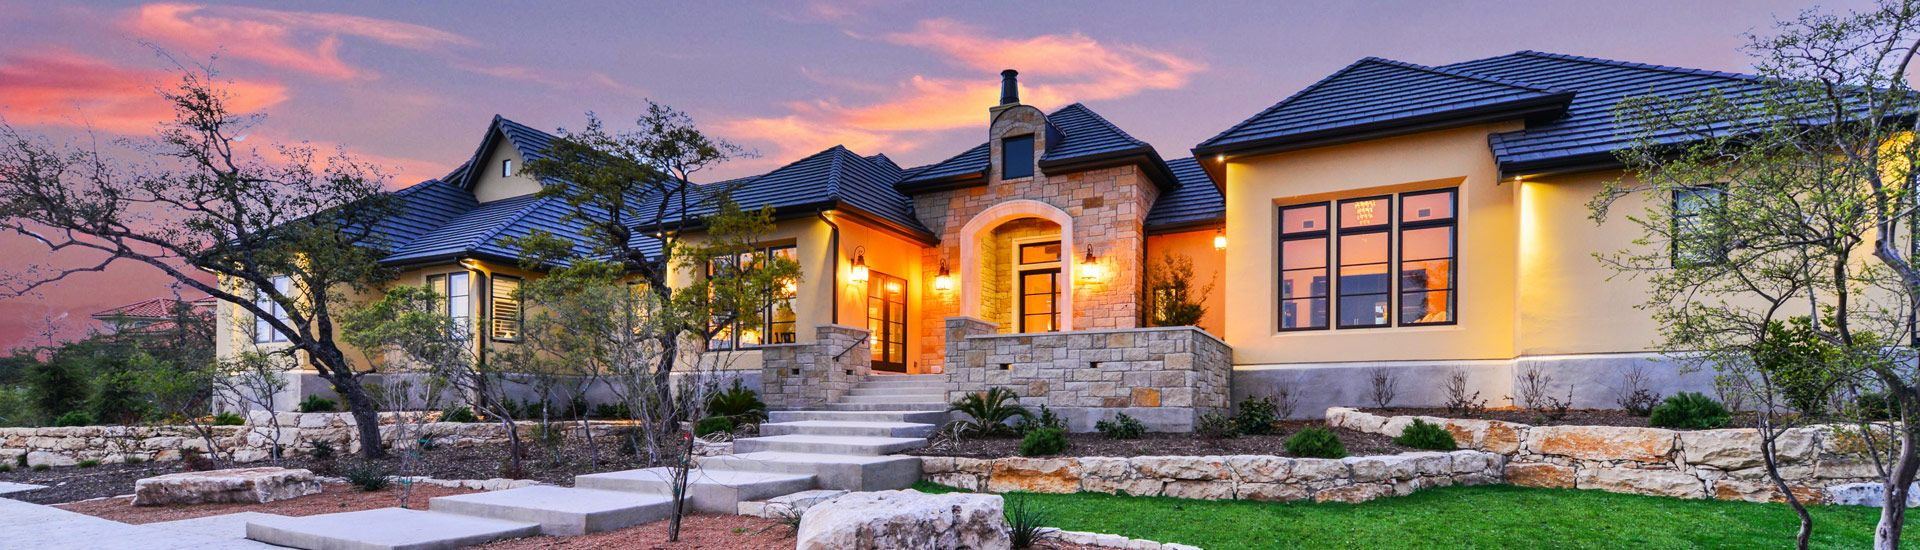 sitterle homes builds a wide range of homes from patio homes to houston home and. Interior Design Ideas. Home Design Ideas